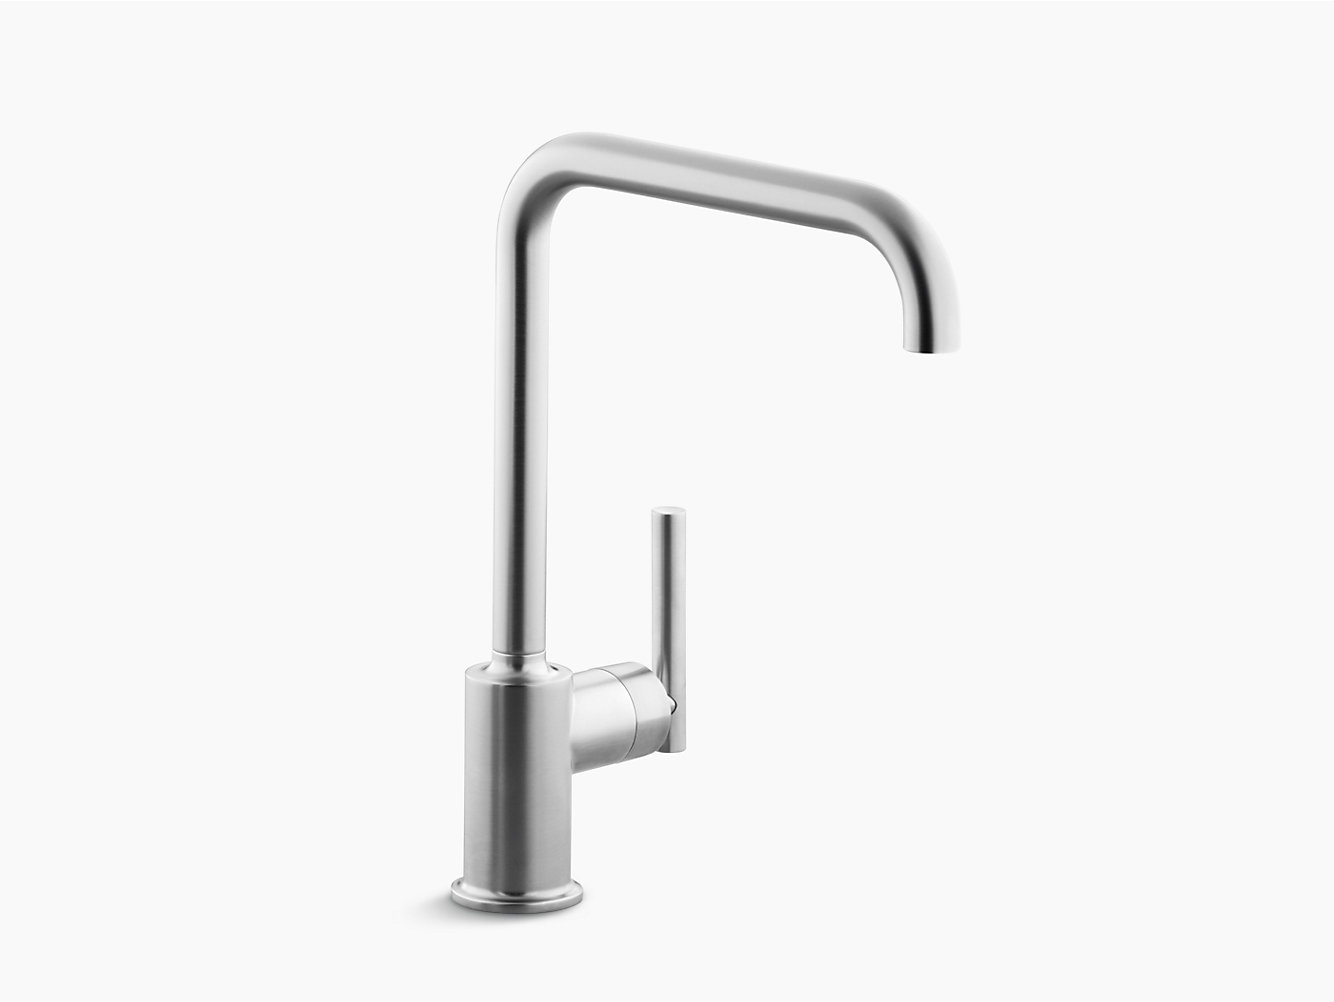 cruette supply faucet faucets heating state purist kohler pulldown kol htm plumbing bay rgb cp kitchen